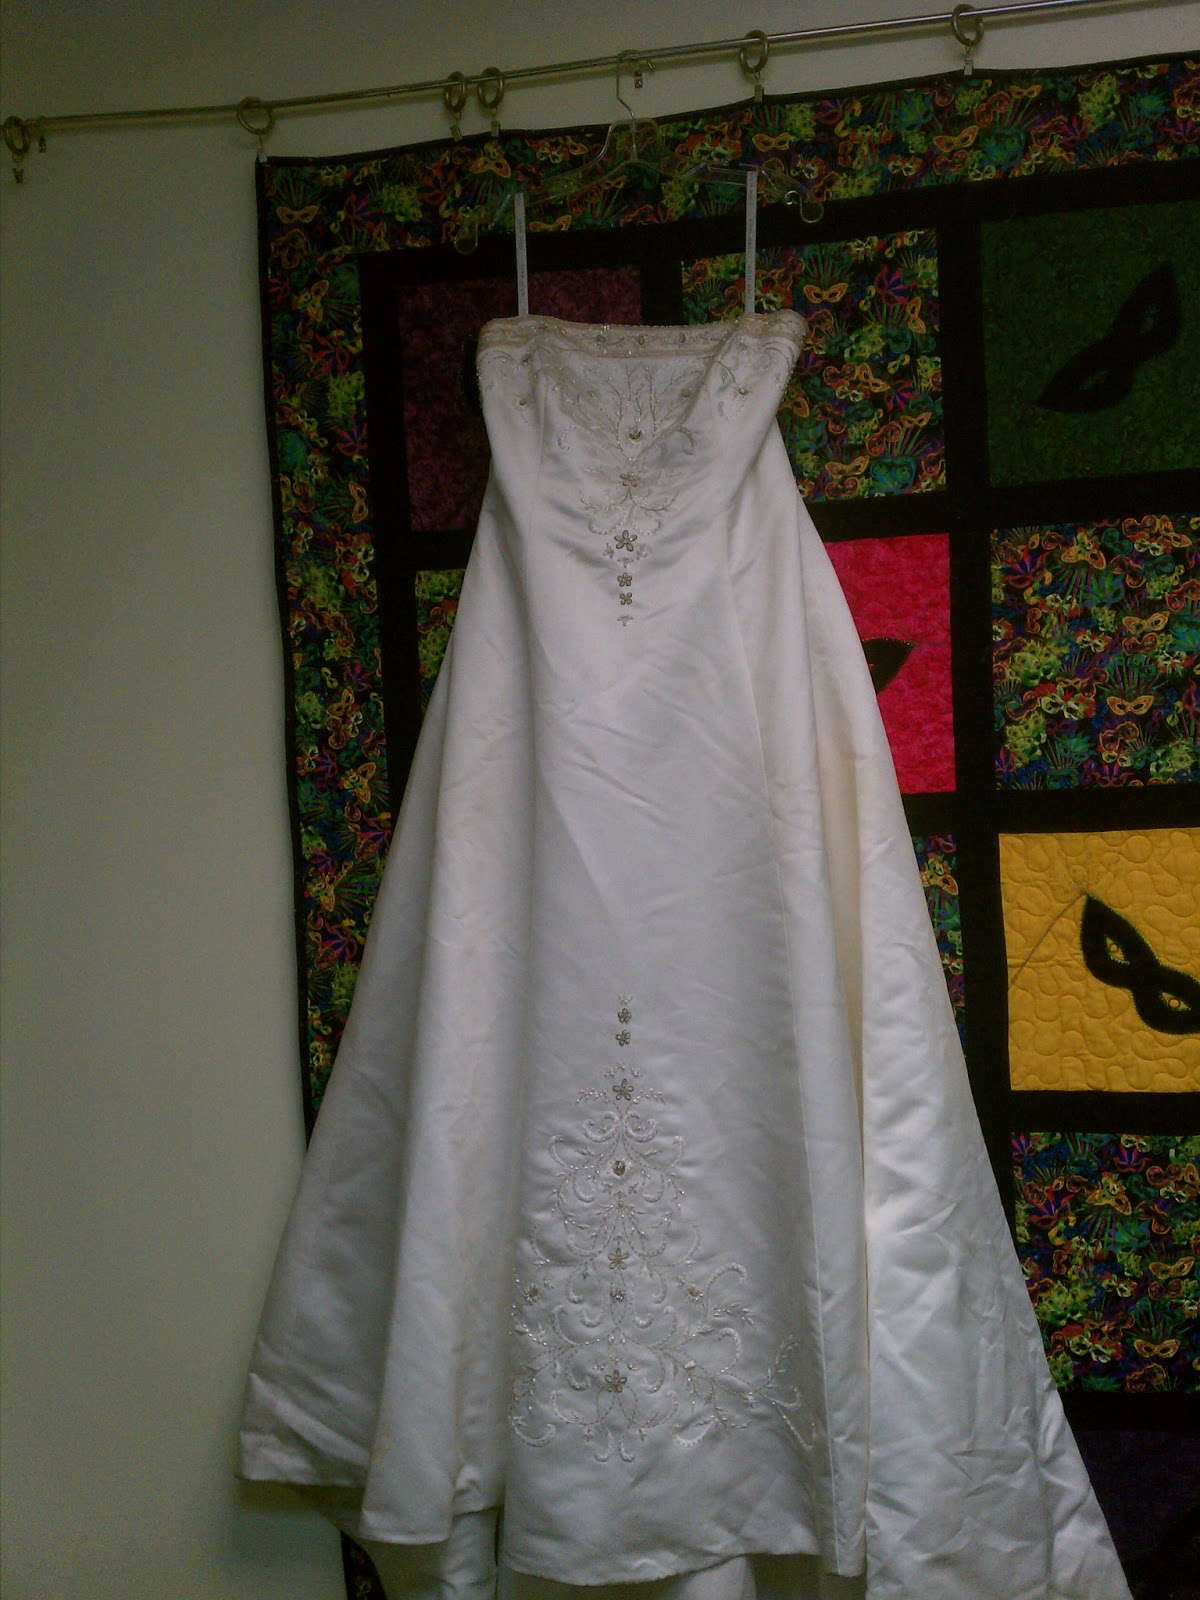 back porch quiltworks heirloom wedding dress quilt